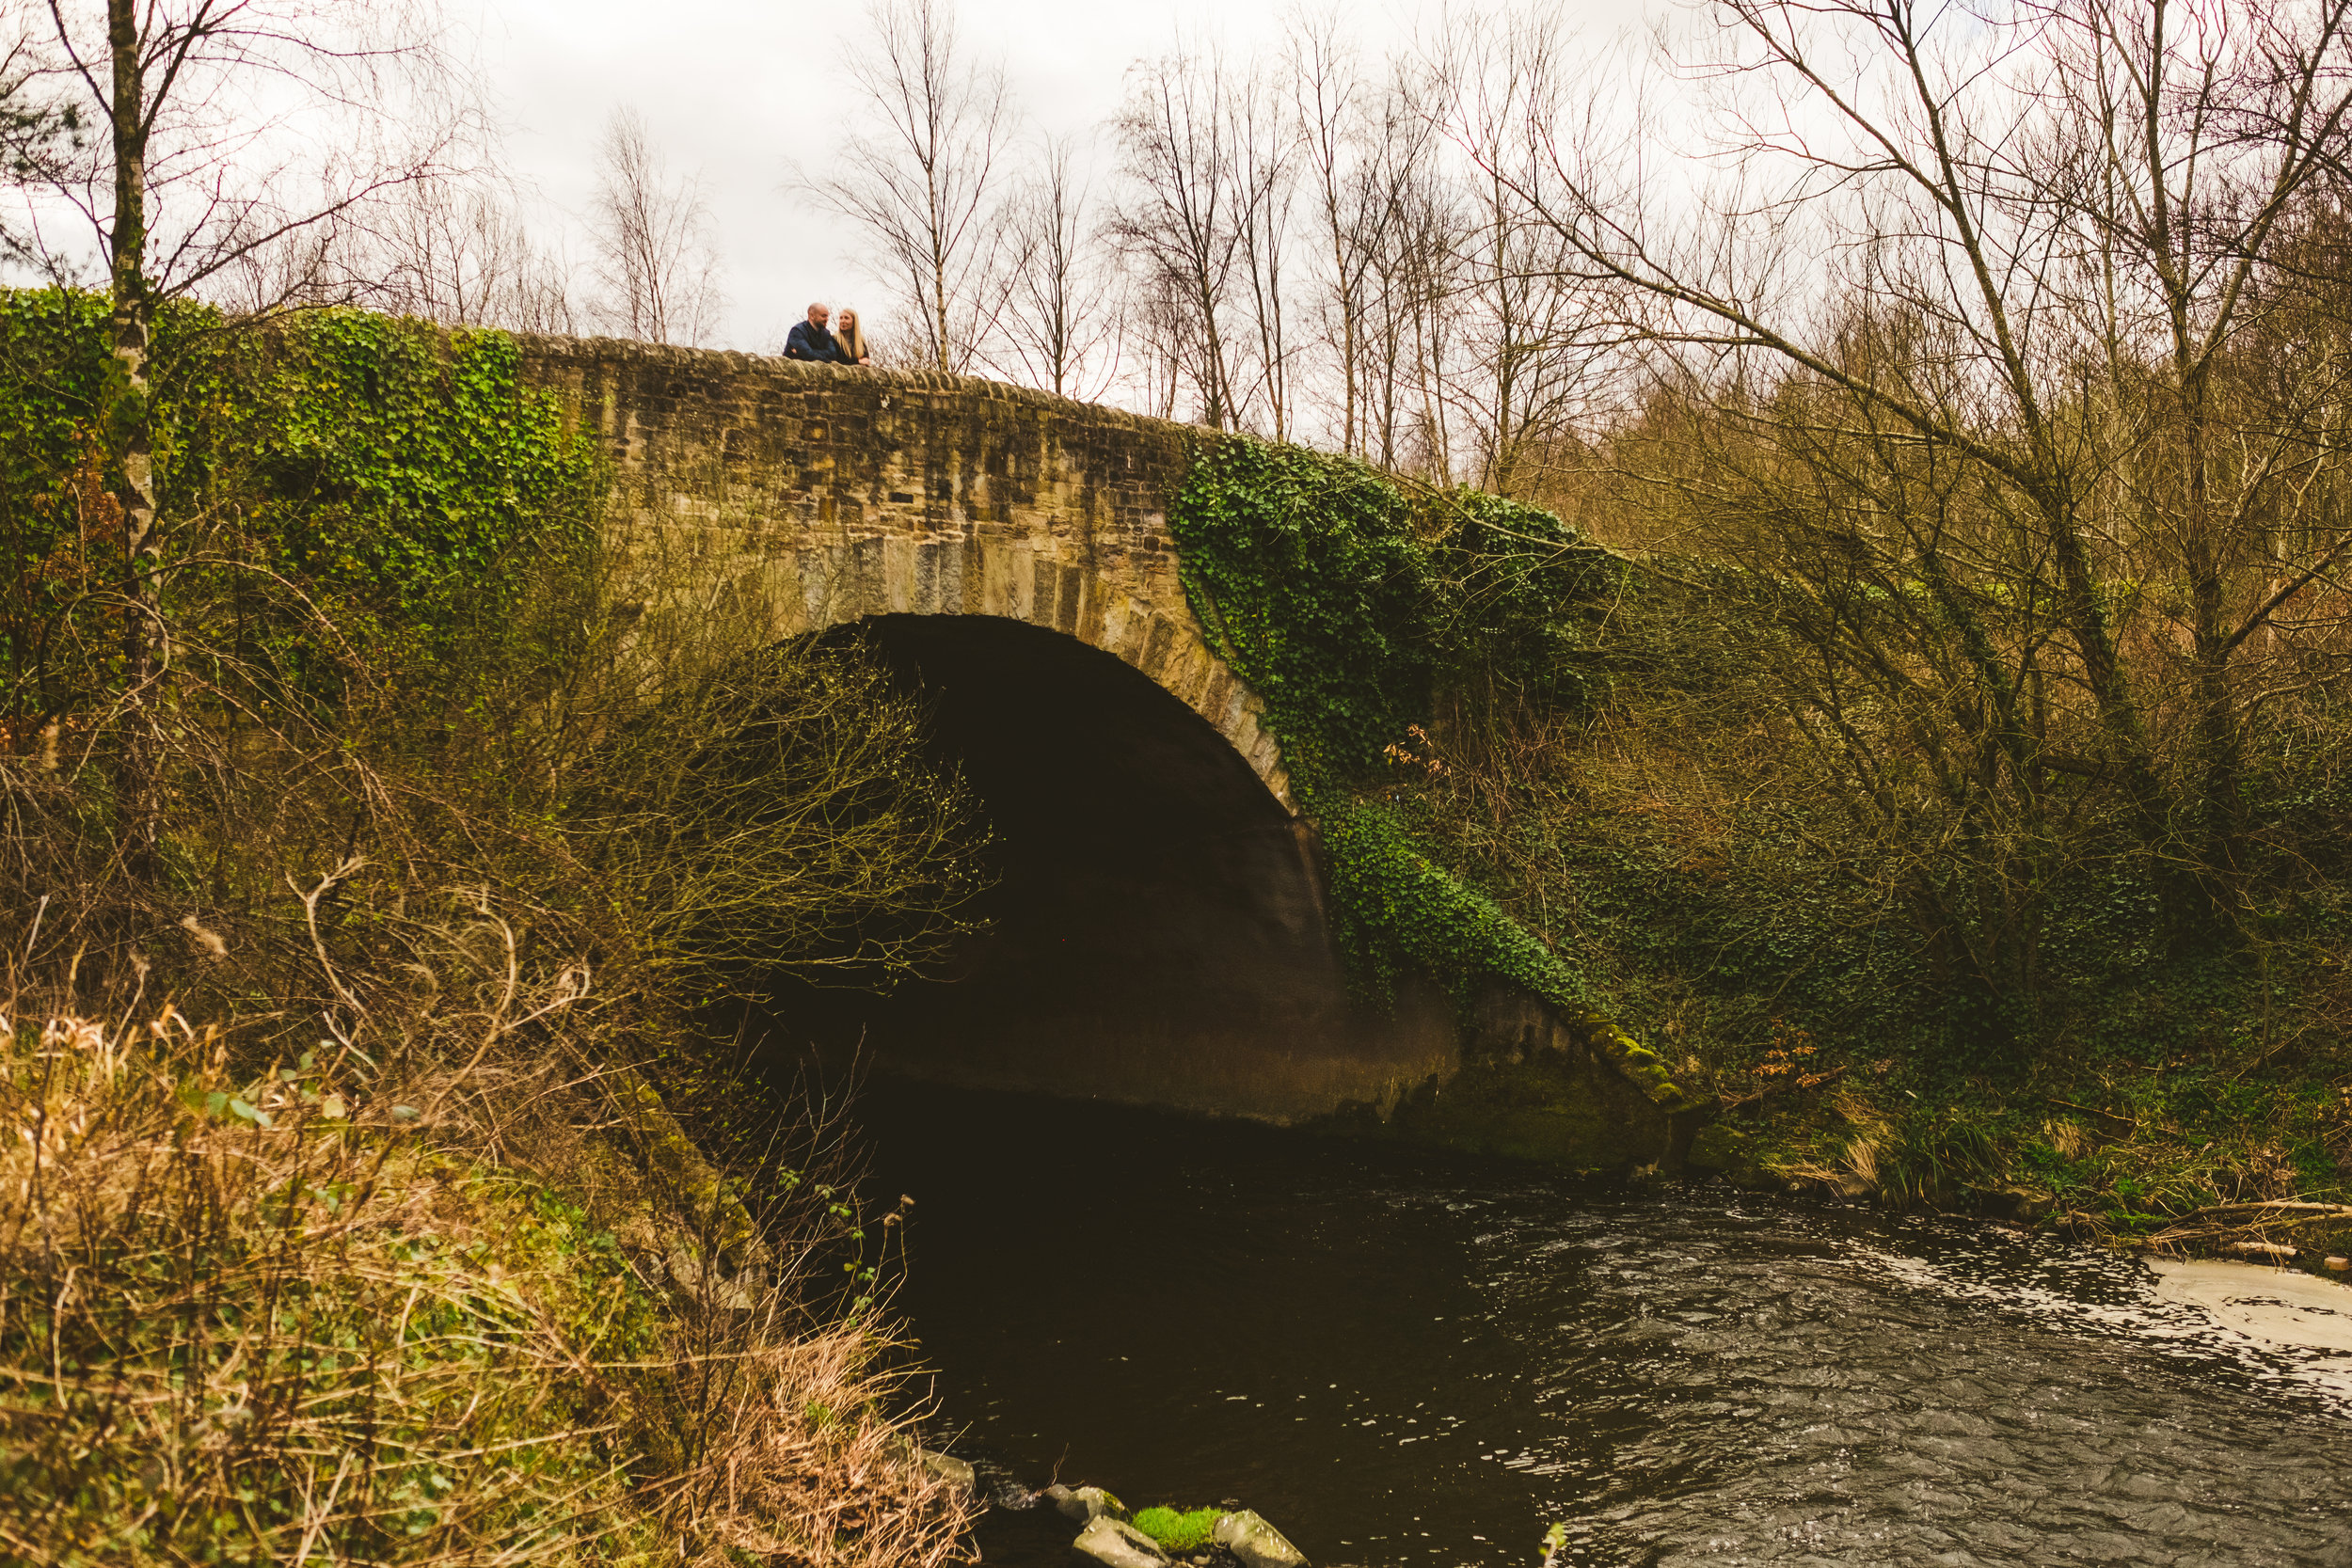 Couple stand on hump back bridge with stream running underneath in Newcastle